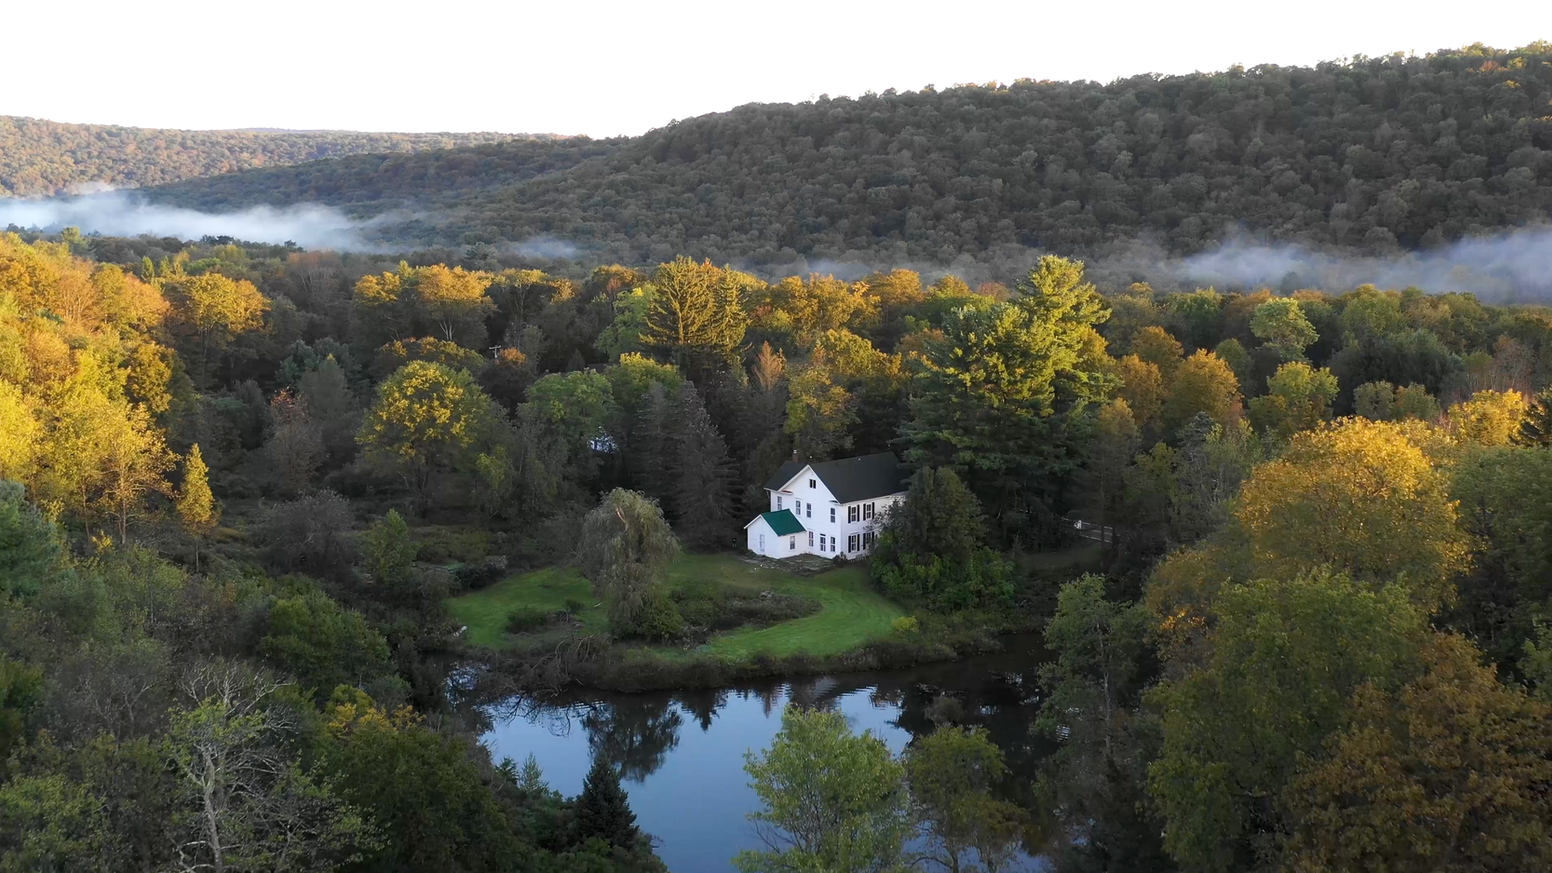 The La Anna Guesthouse is a new creatives' retreat and artist-in-residence program located in a historic home in the Pocono Mountains.